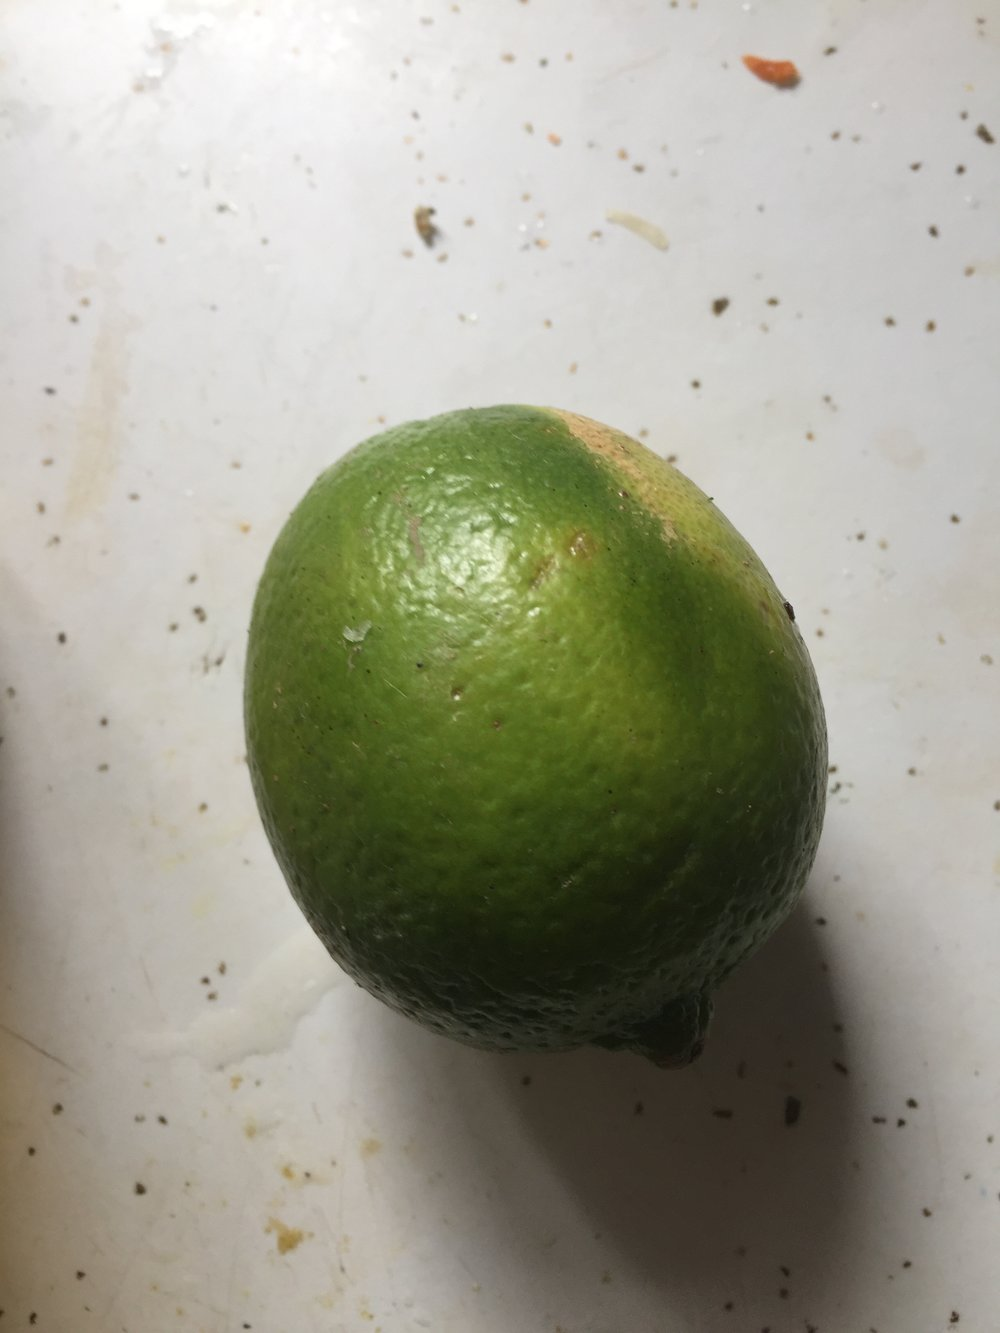 Juice the limes by cutting them open and with your hand crushing their insides to produce juice. Juice should be about a cup of lime juice. Add the juice to a pitcher.